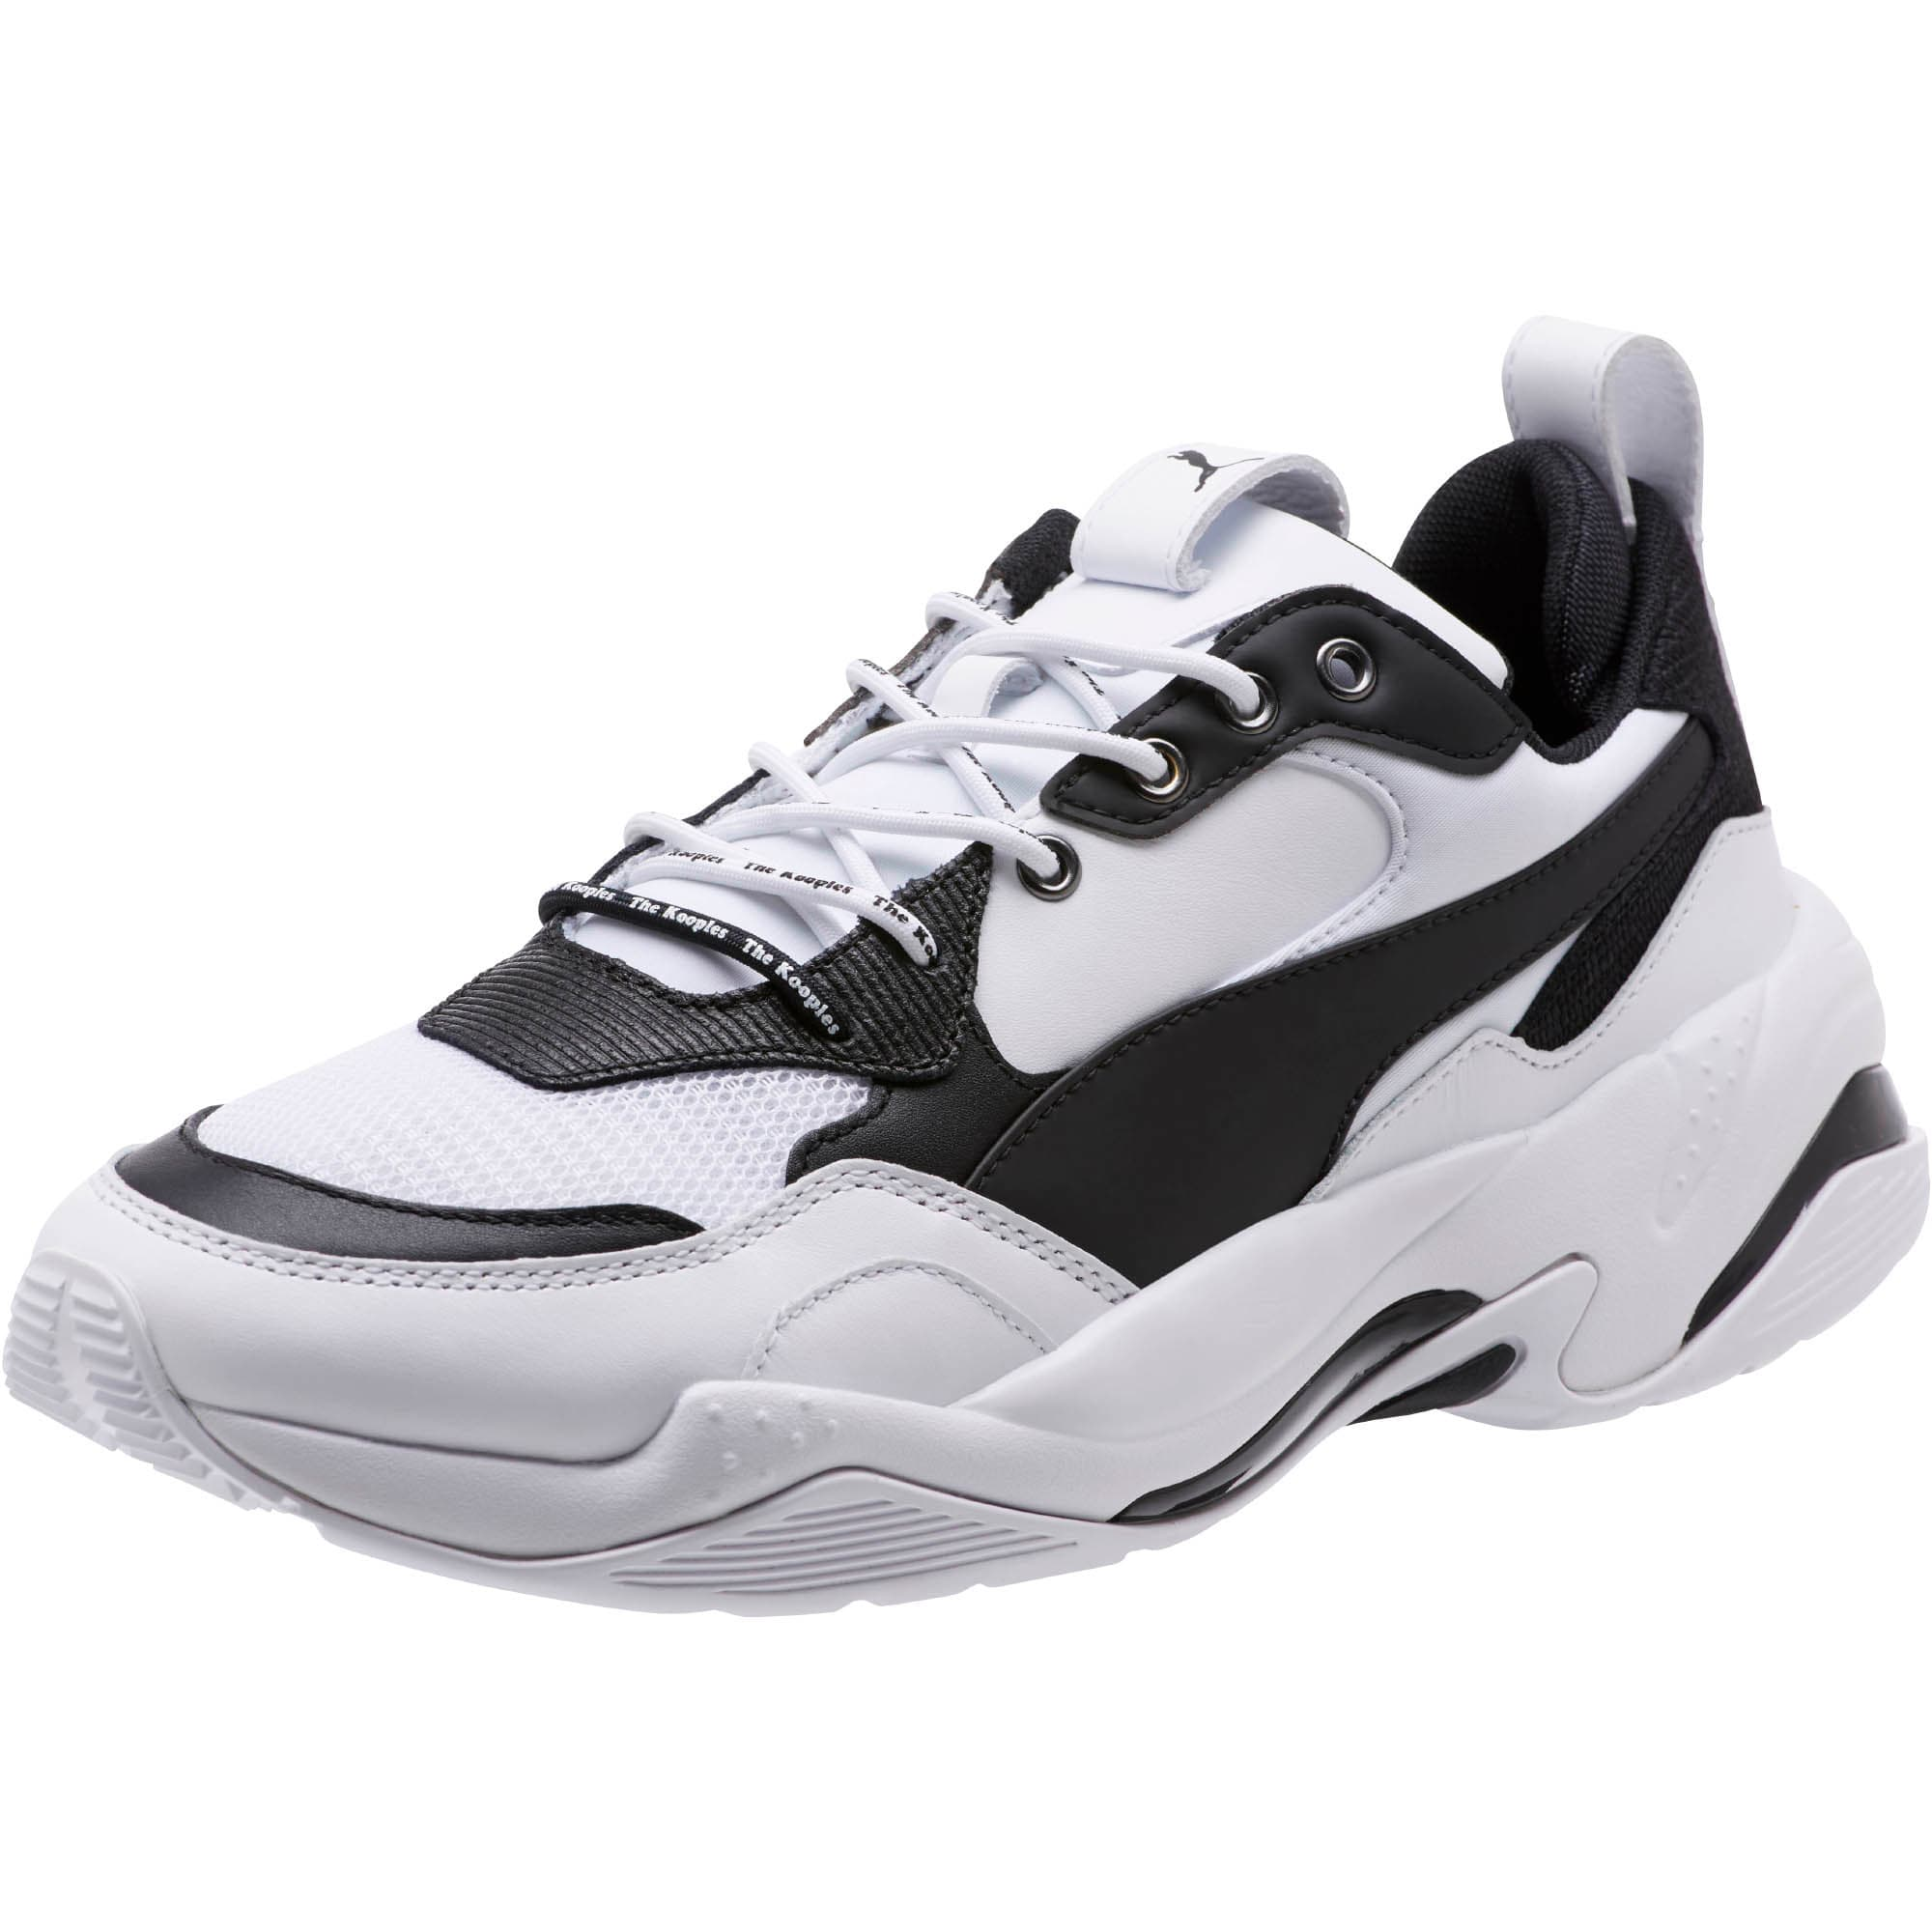 reputable site 079af 9755a PUMA x THE KOOPLES Thunder Sneakers